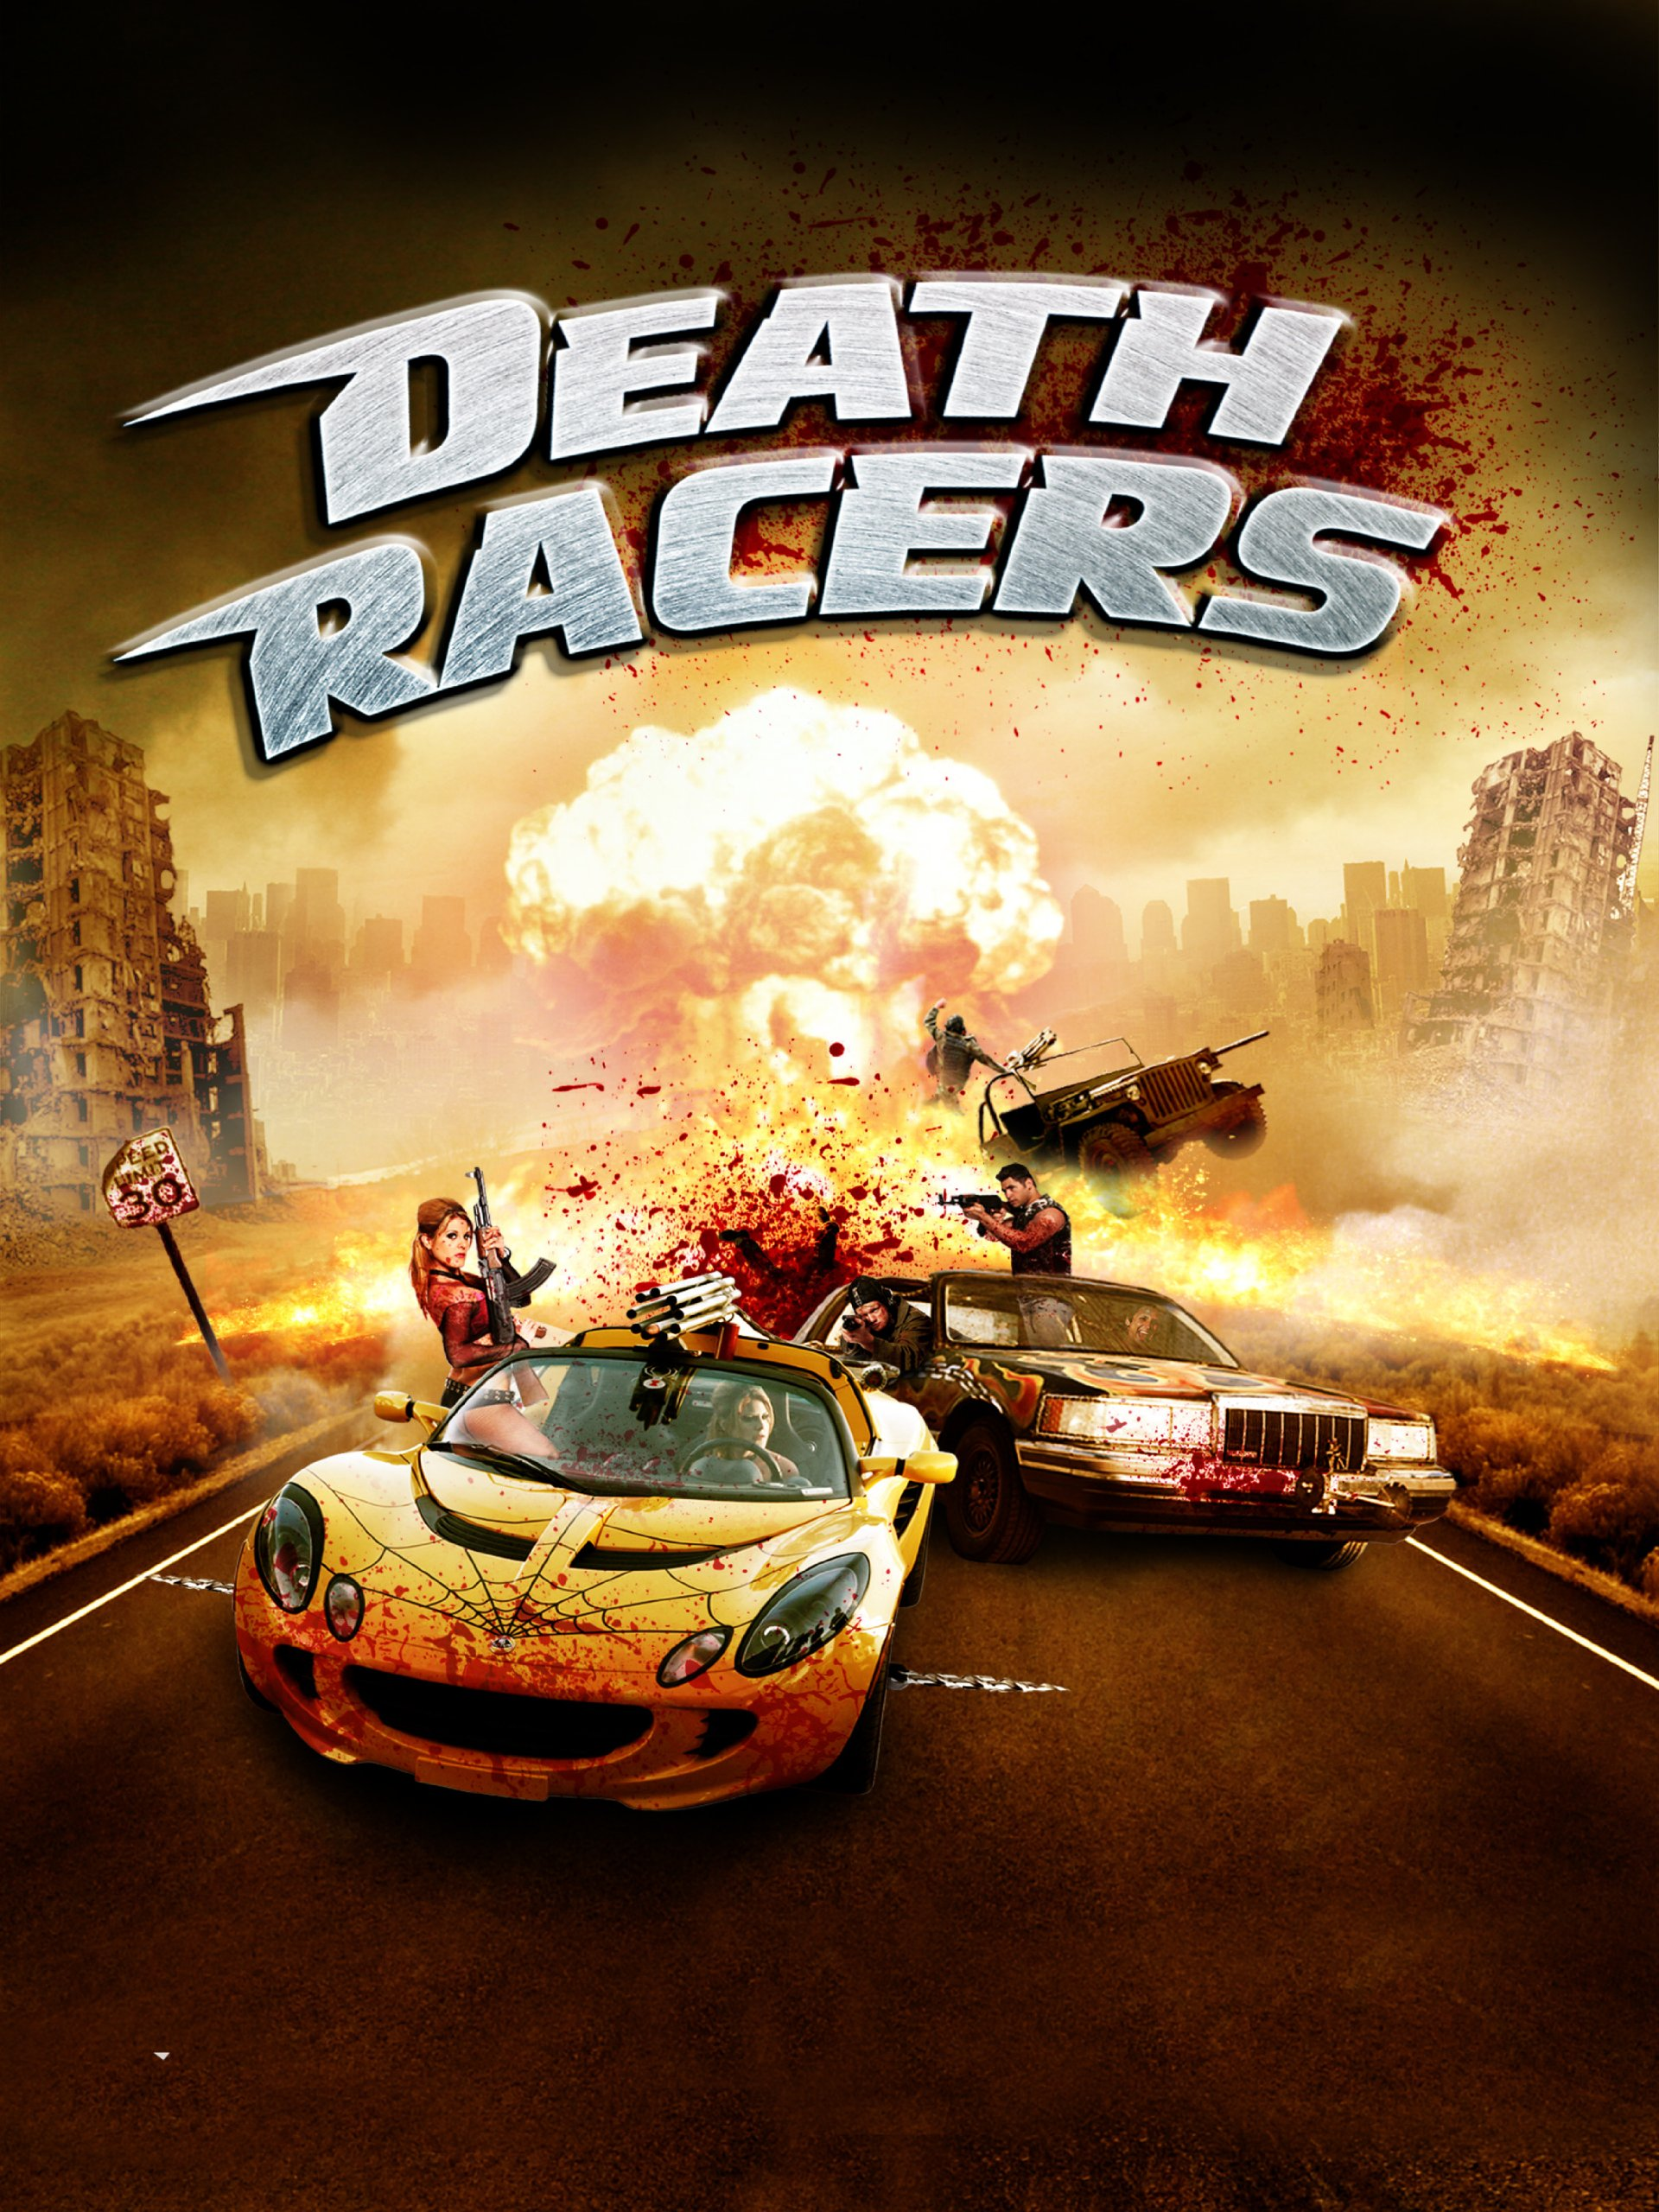 File:Death Racers.jpg